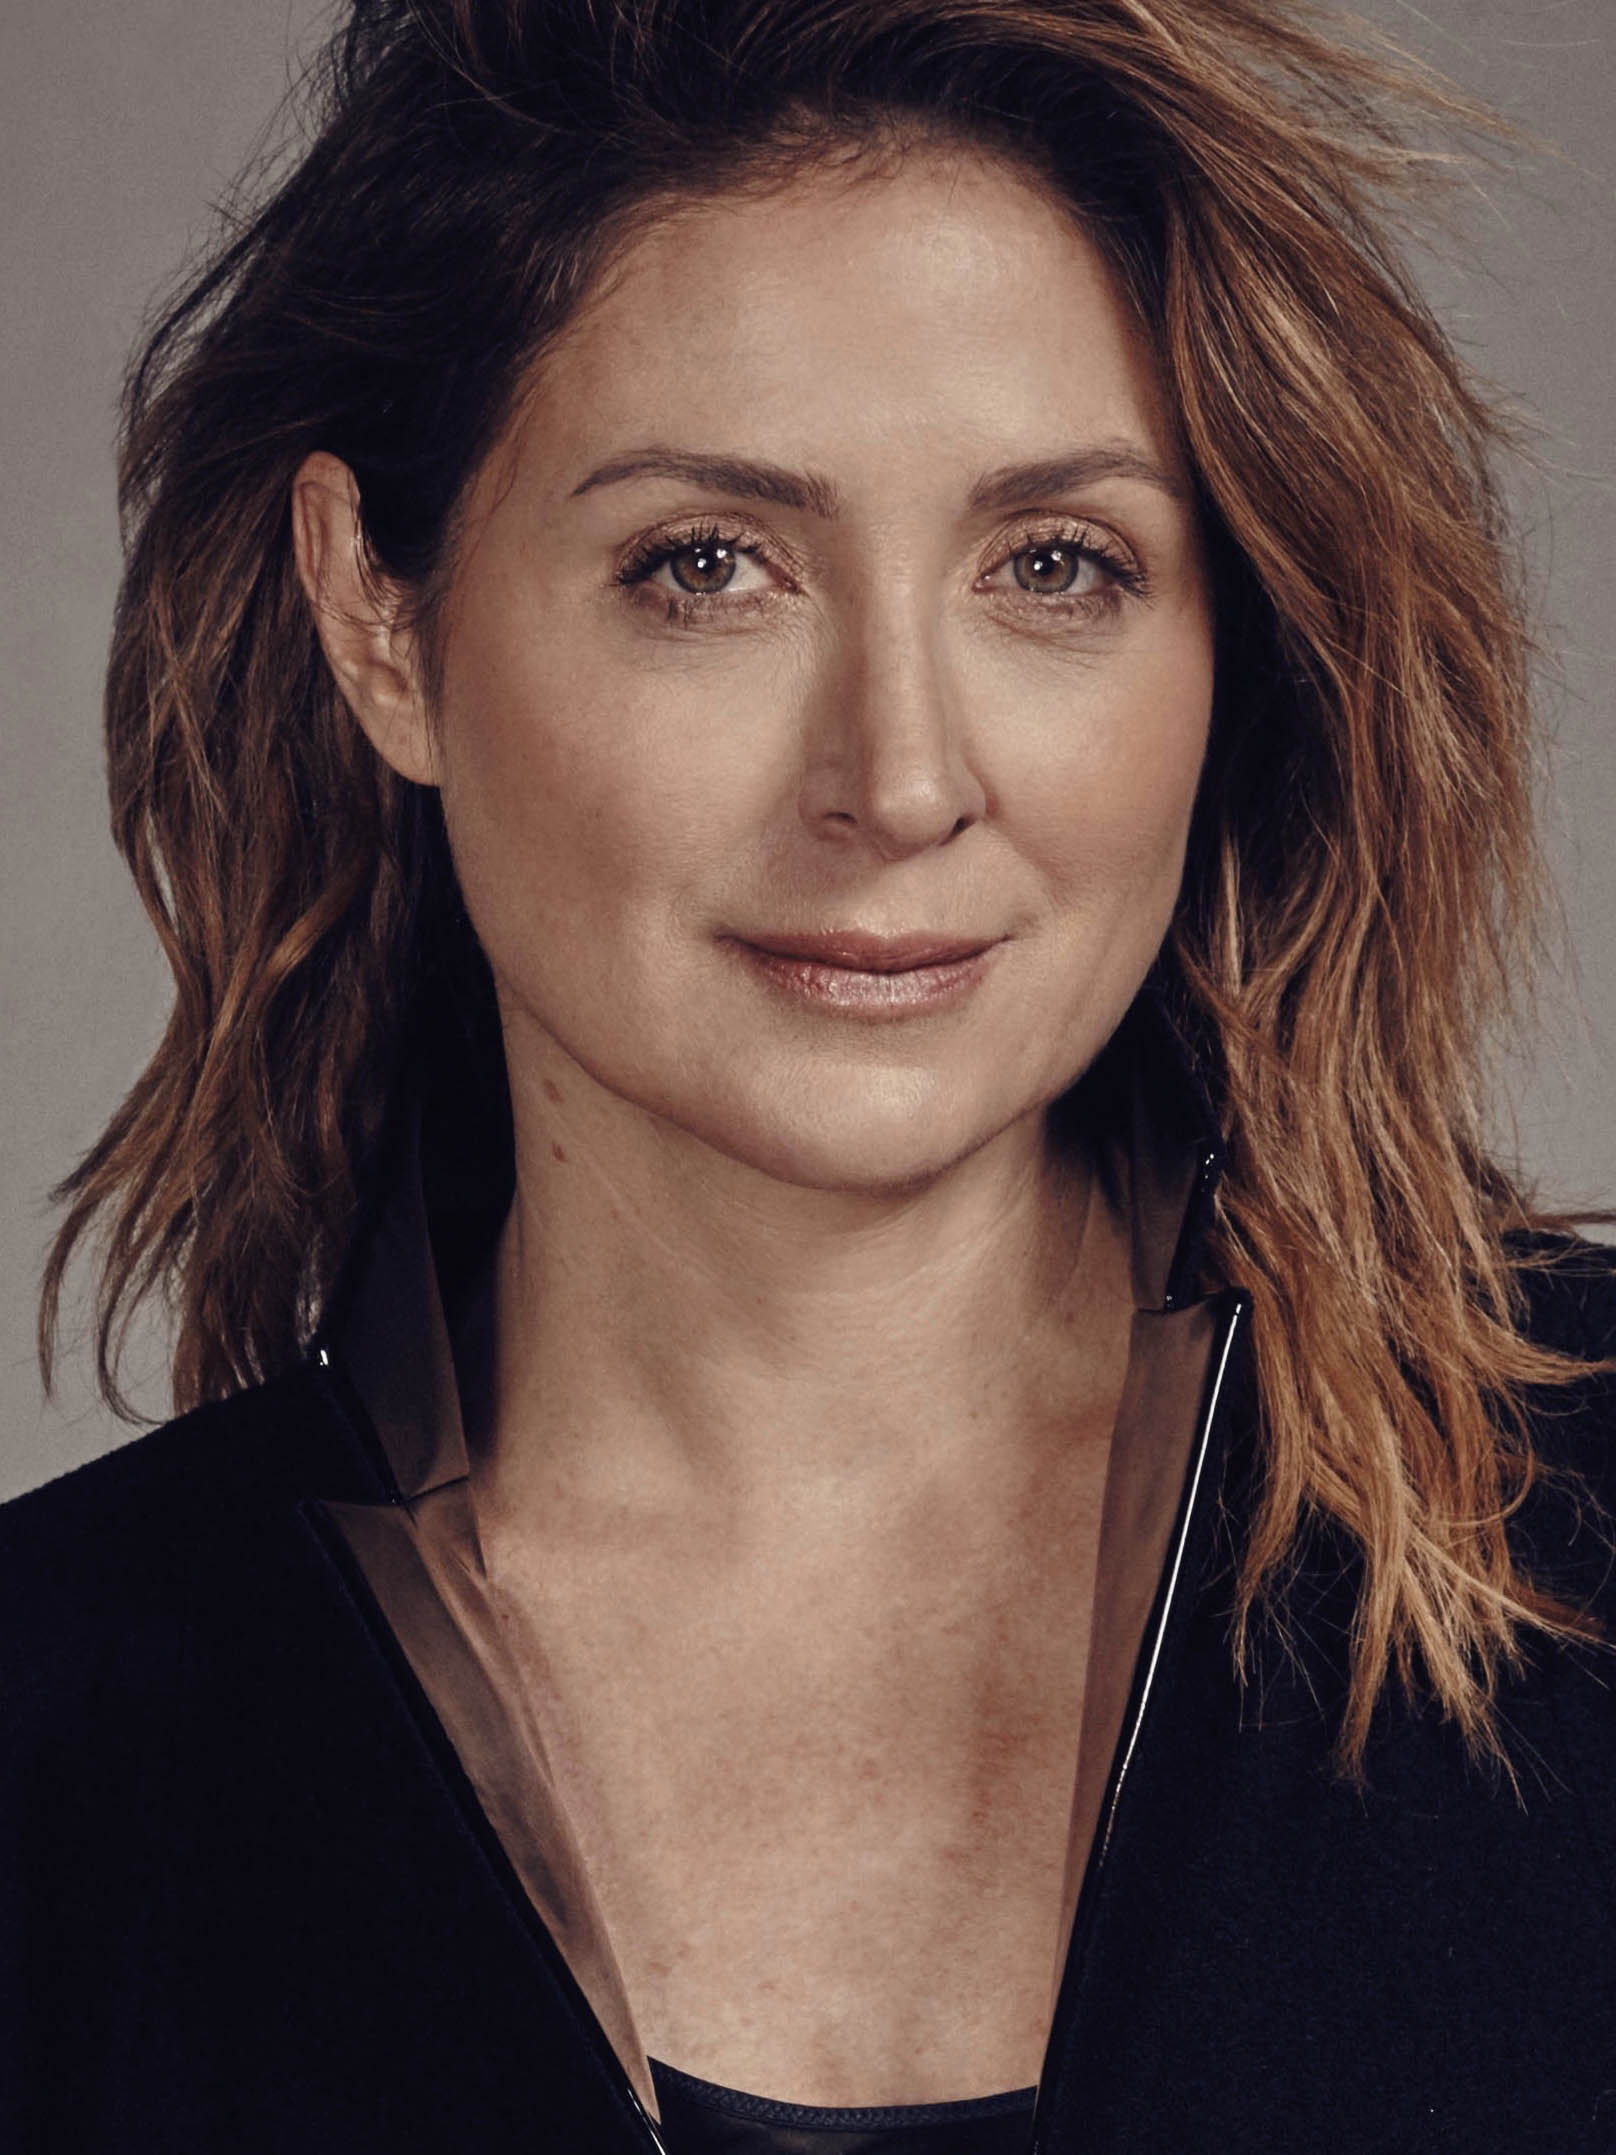 Sasha Alexander bathing suit